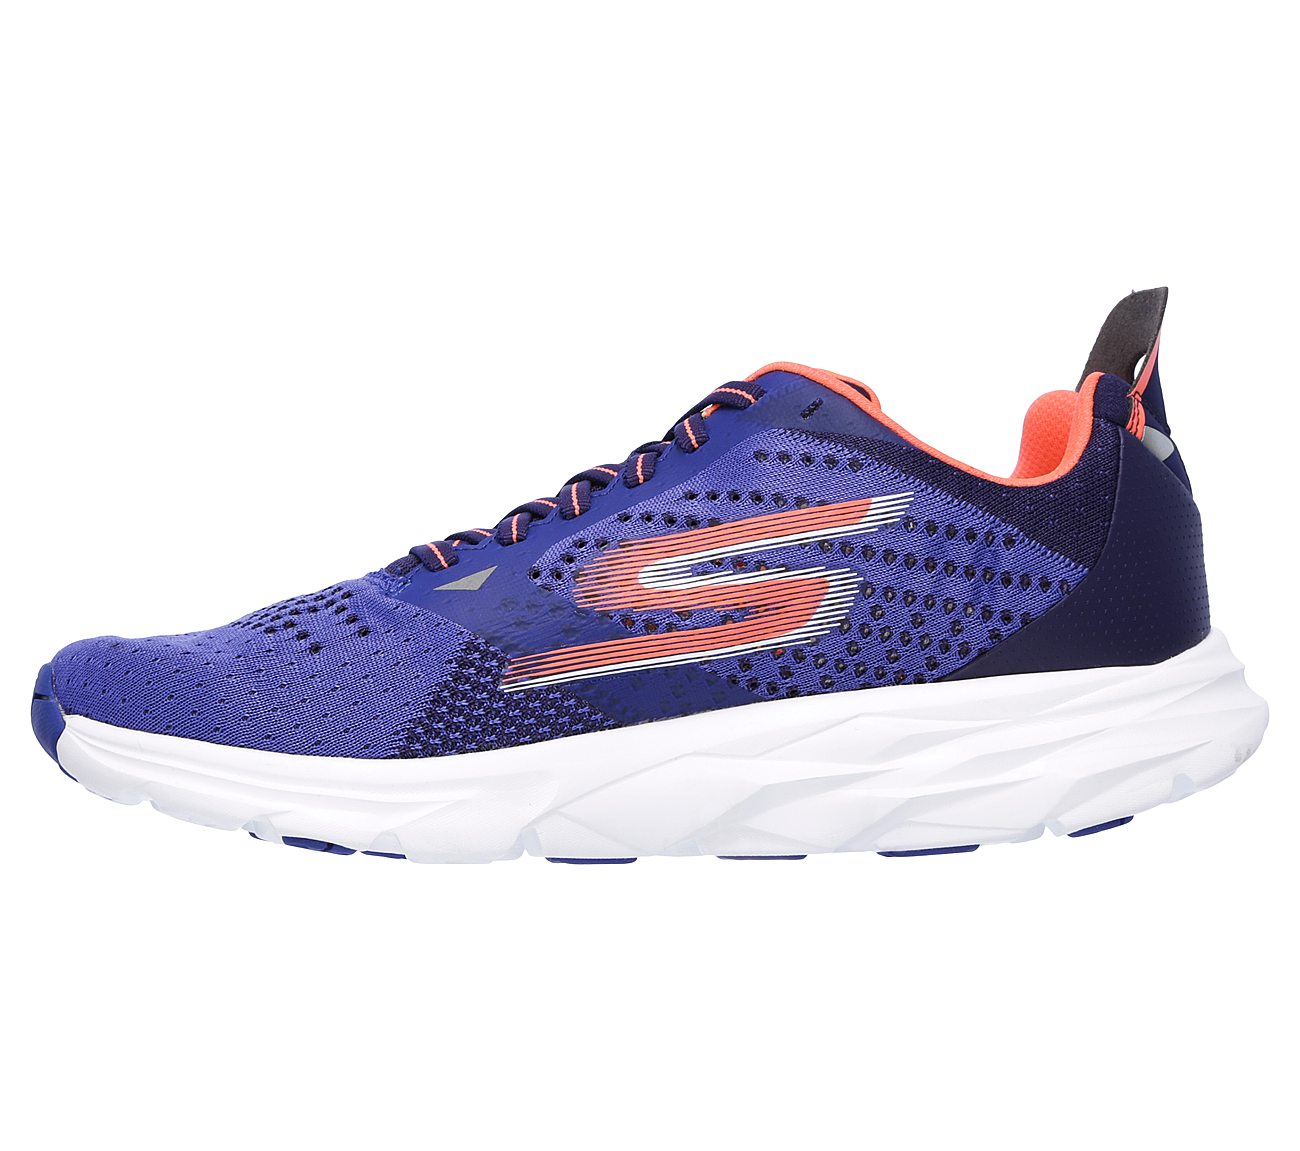 8f764def3a Buy SKECHERS Skechers GOrun Ride 6 Skechers Performance Shoes only ...